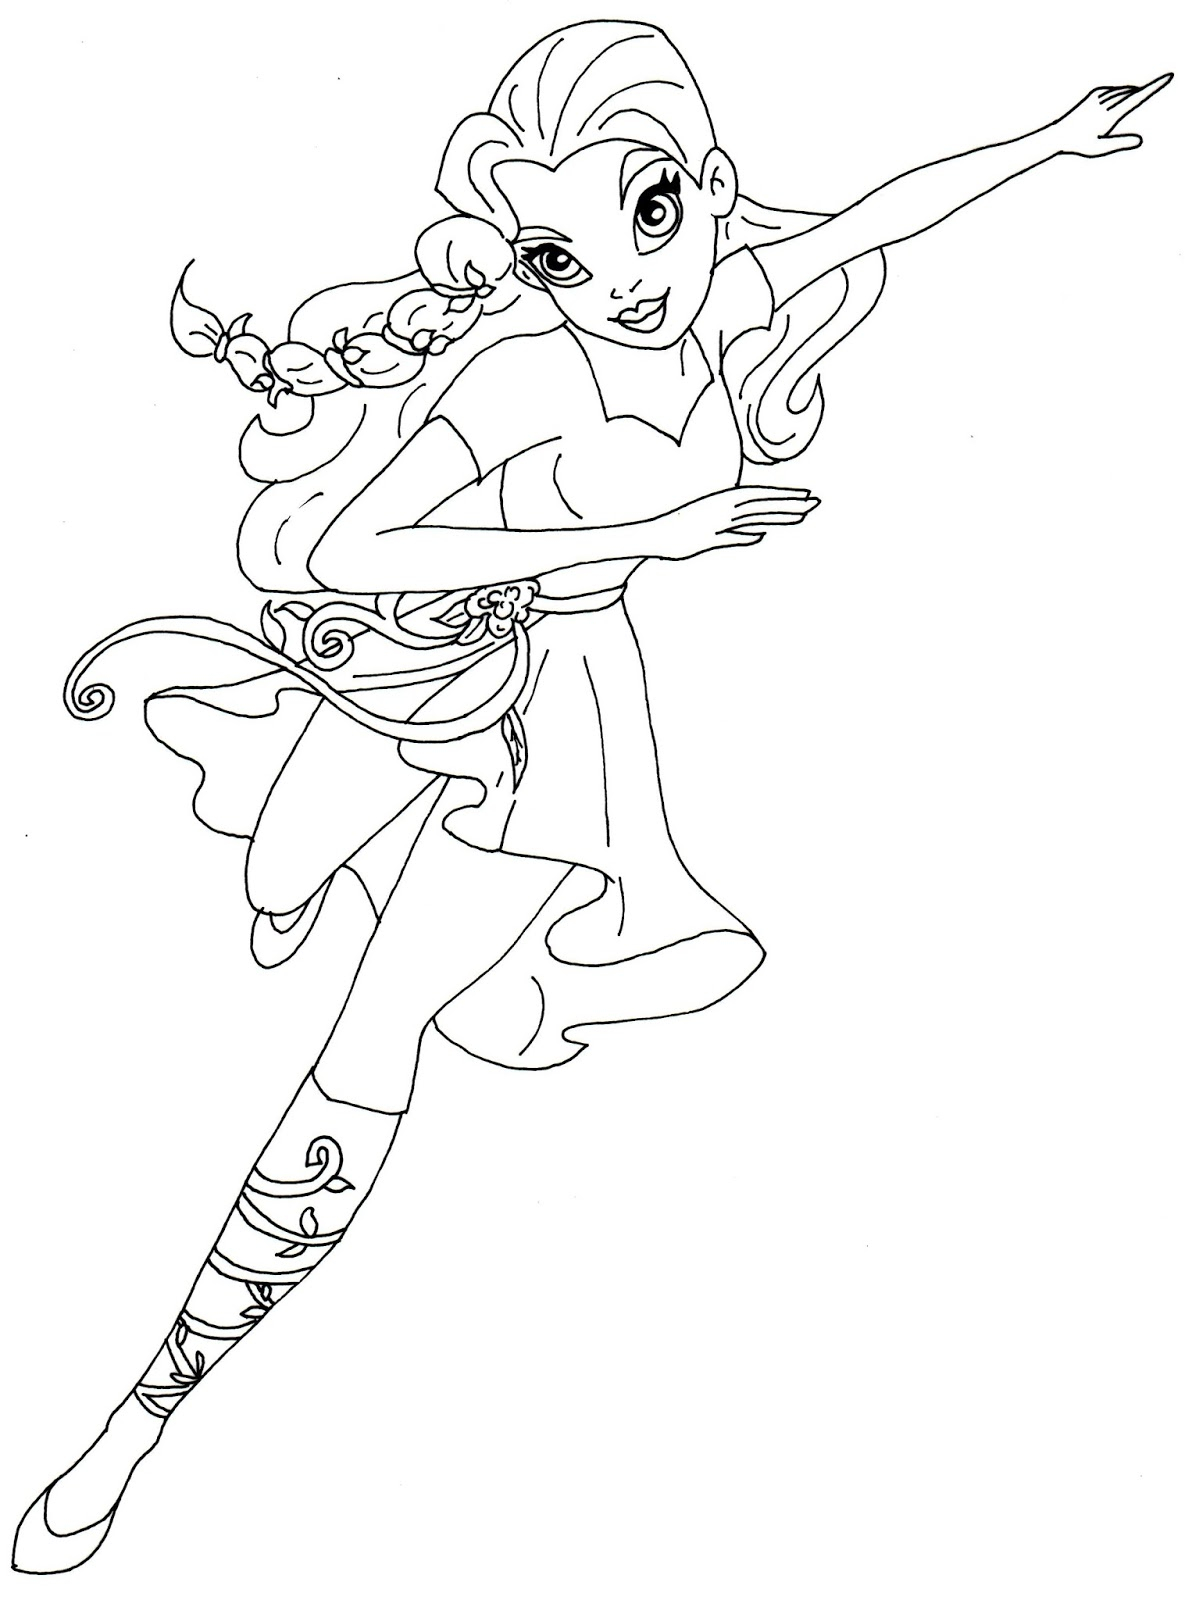 Printable Coloring Pages For Girls Girl Superhero Printable Coloring Pages For Kids Printable